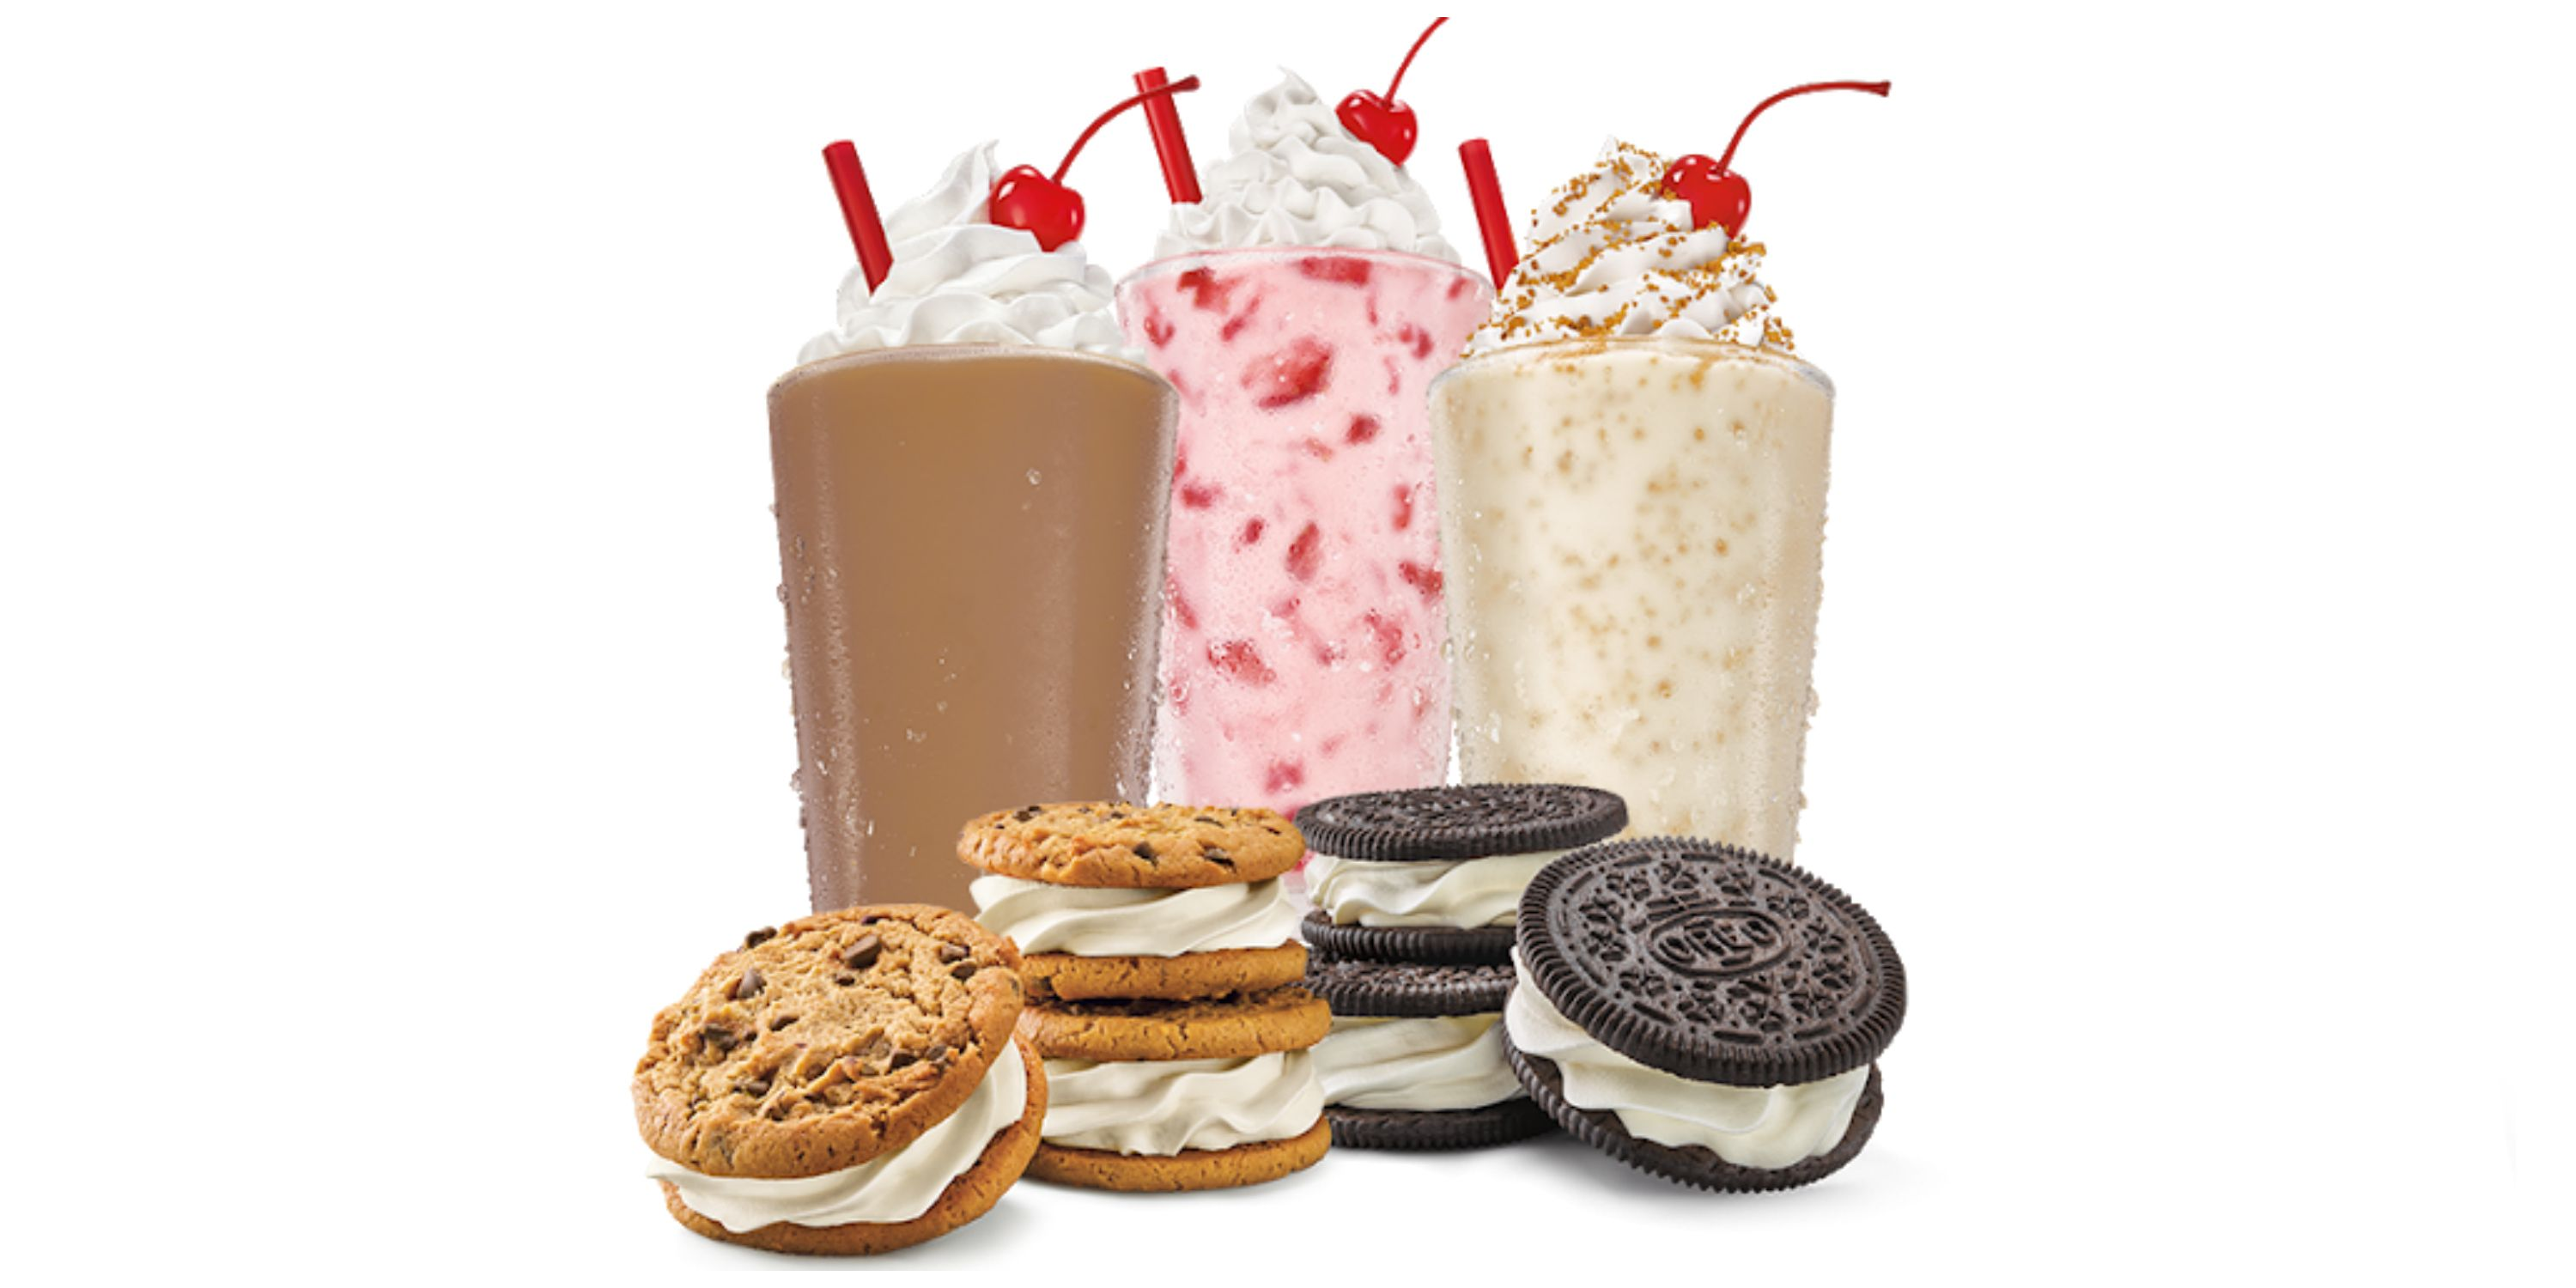 Sonic Nights Deals Are Coming Back And Ice Cream Sandwiches Will Be Less Than $1.50